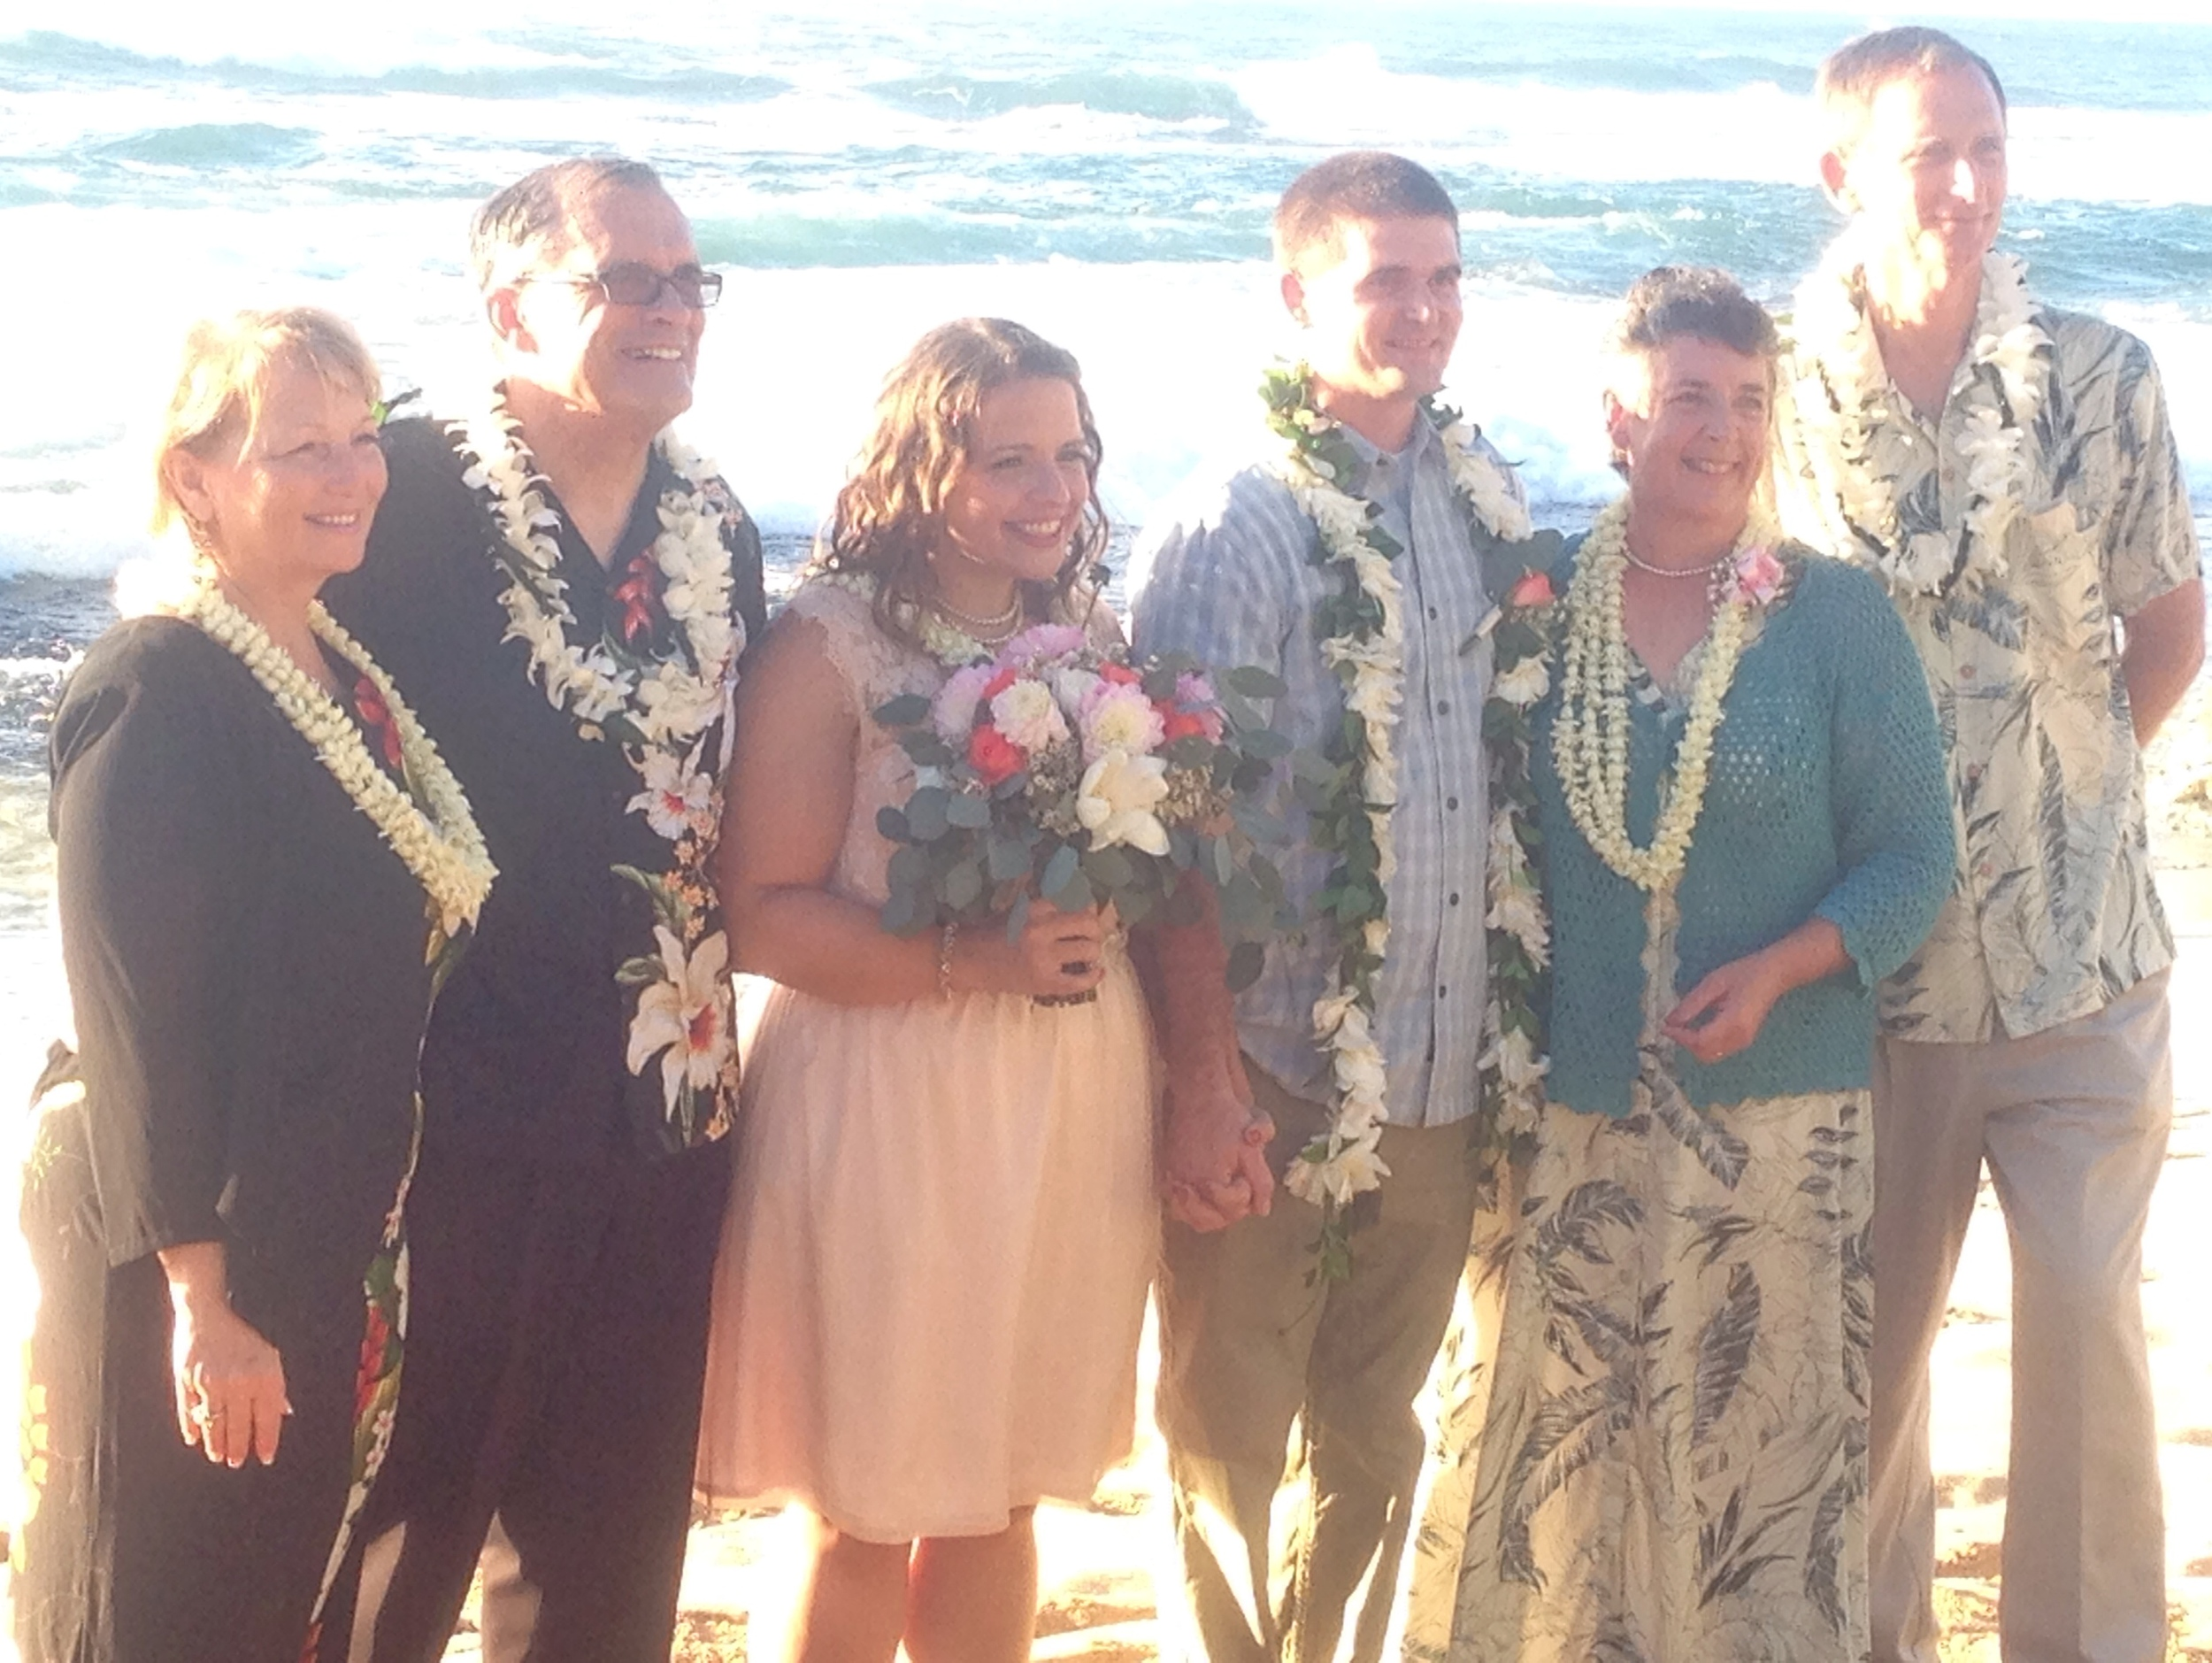 jacqueline-caleb-beach-hawaii-wedding-family